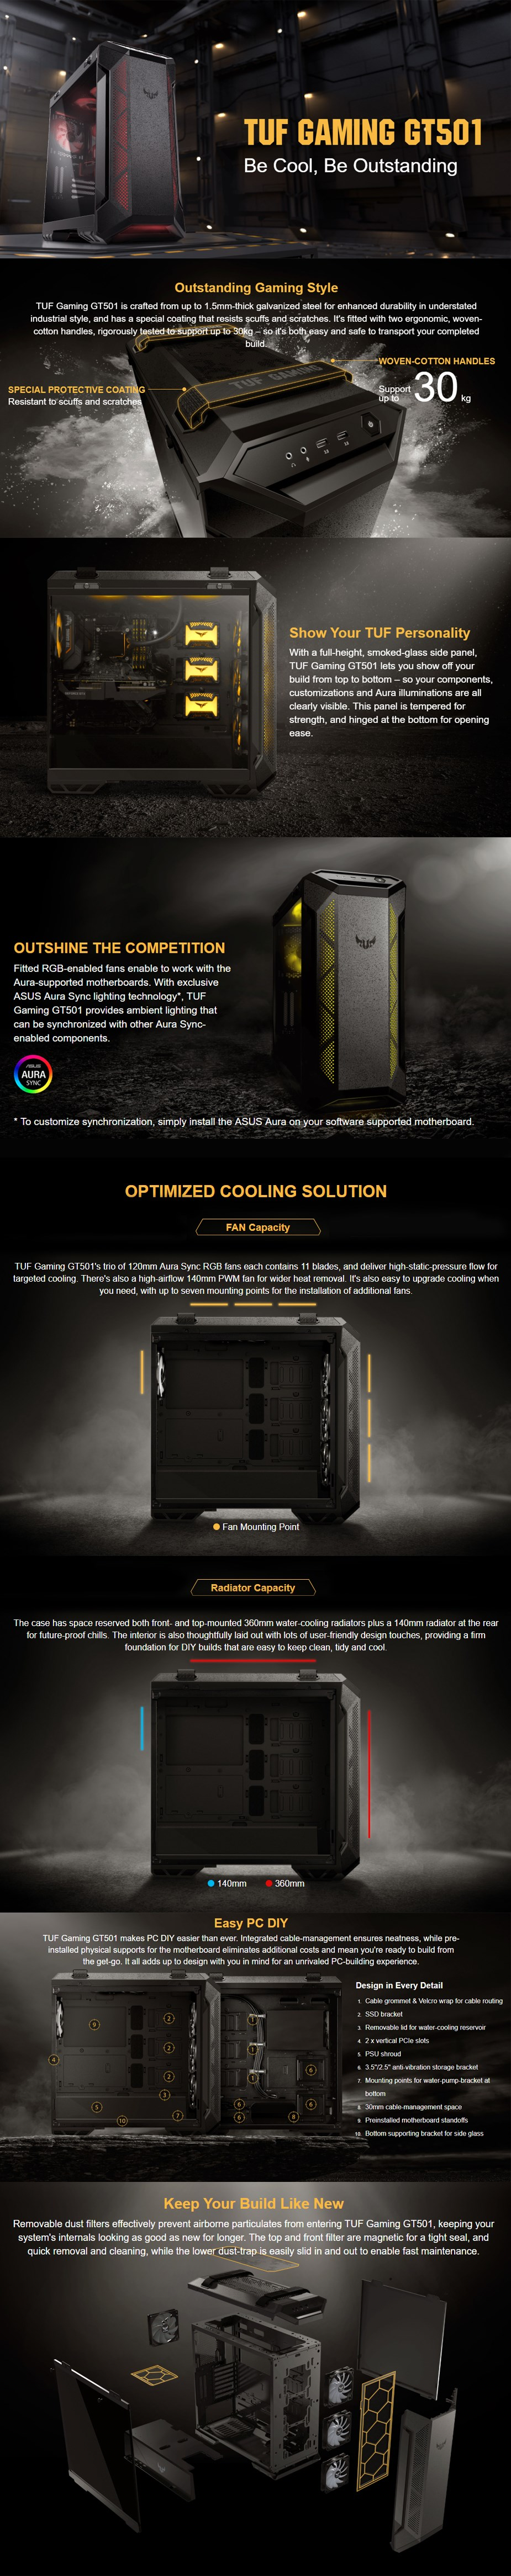 ASUS TUF Gaming GT501 RGB Tempered Glass Mid-Tower E-ATX Case - Desktop Overview 1